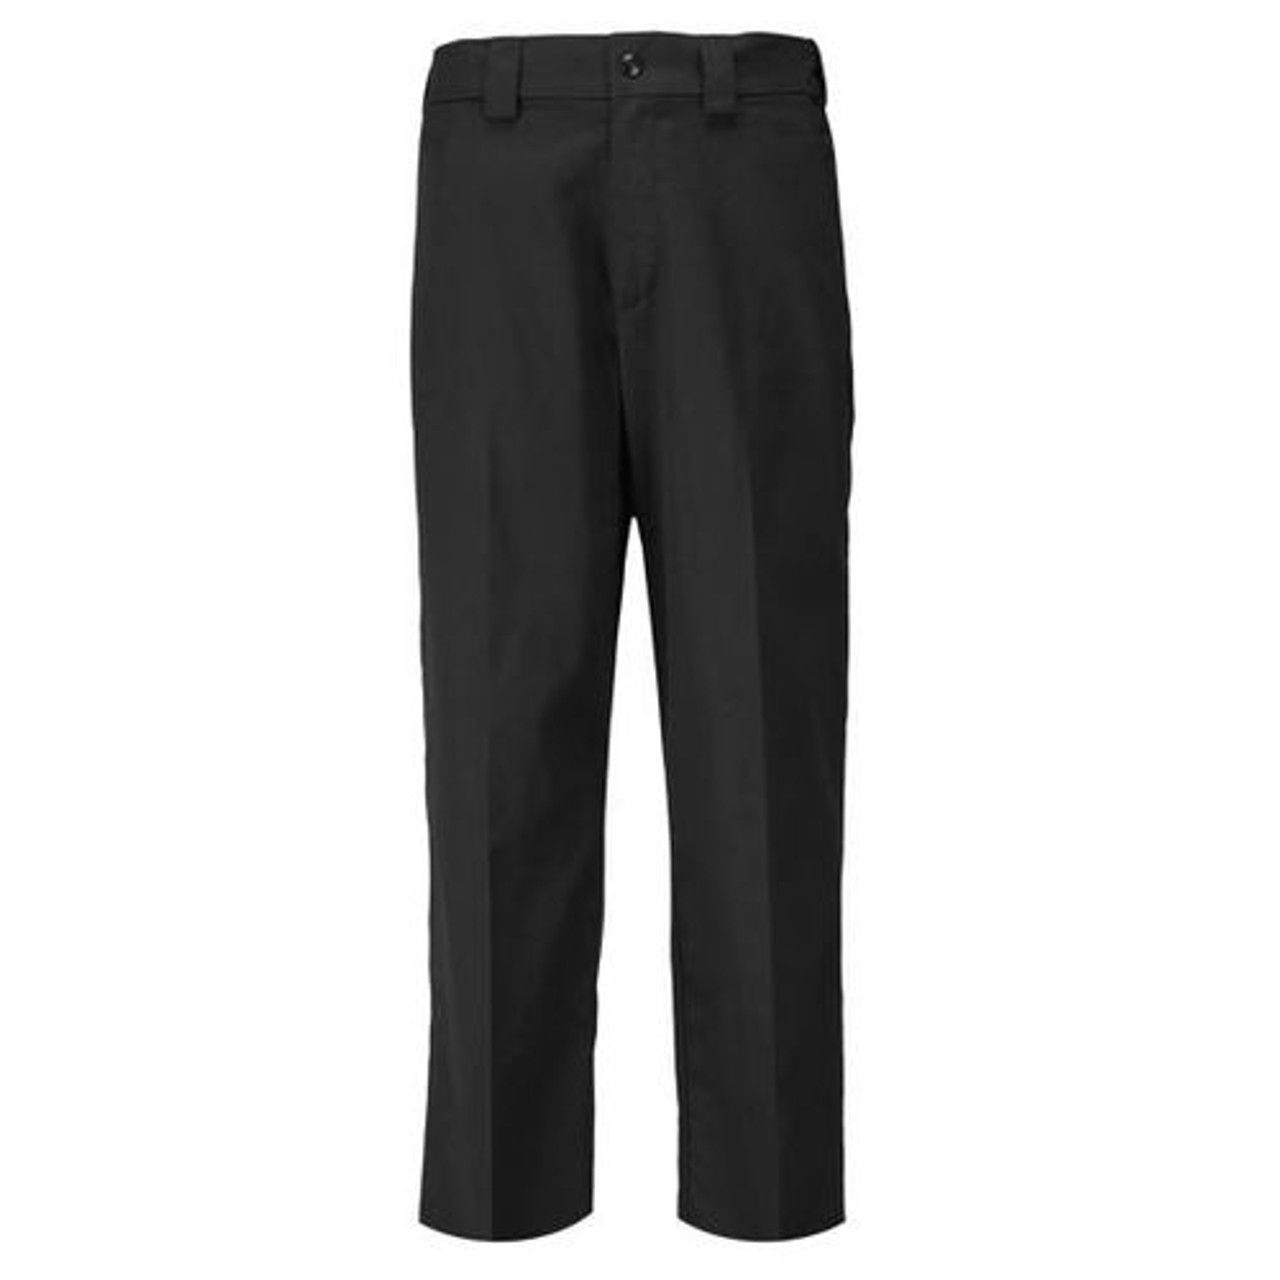 5.11 Tactical 74338 Twill PDU Class-A Pant, Classic/Straight, Polyester/Cotton, Uniform/Cargo, available in Black, Midnight Navy, or Sheriff's Green 74338